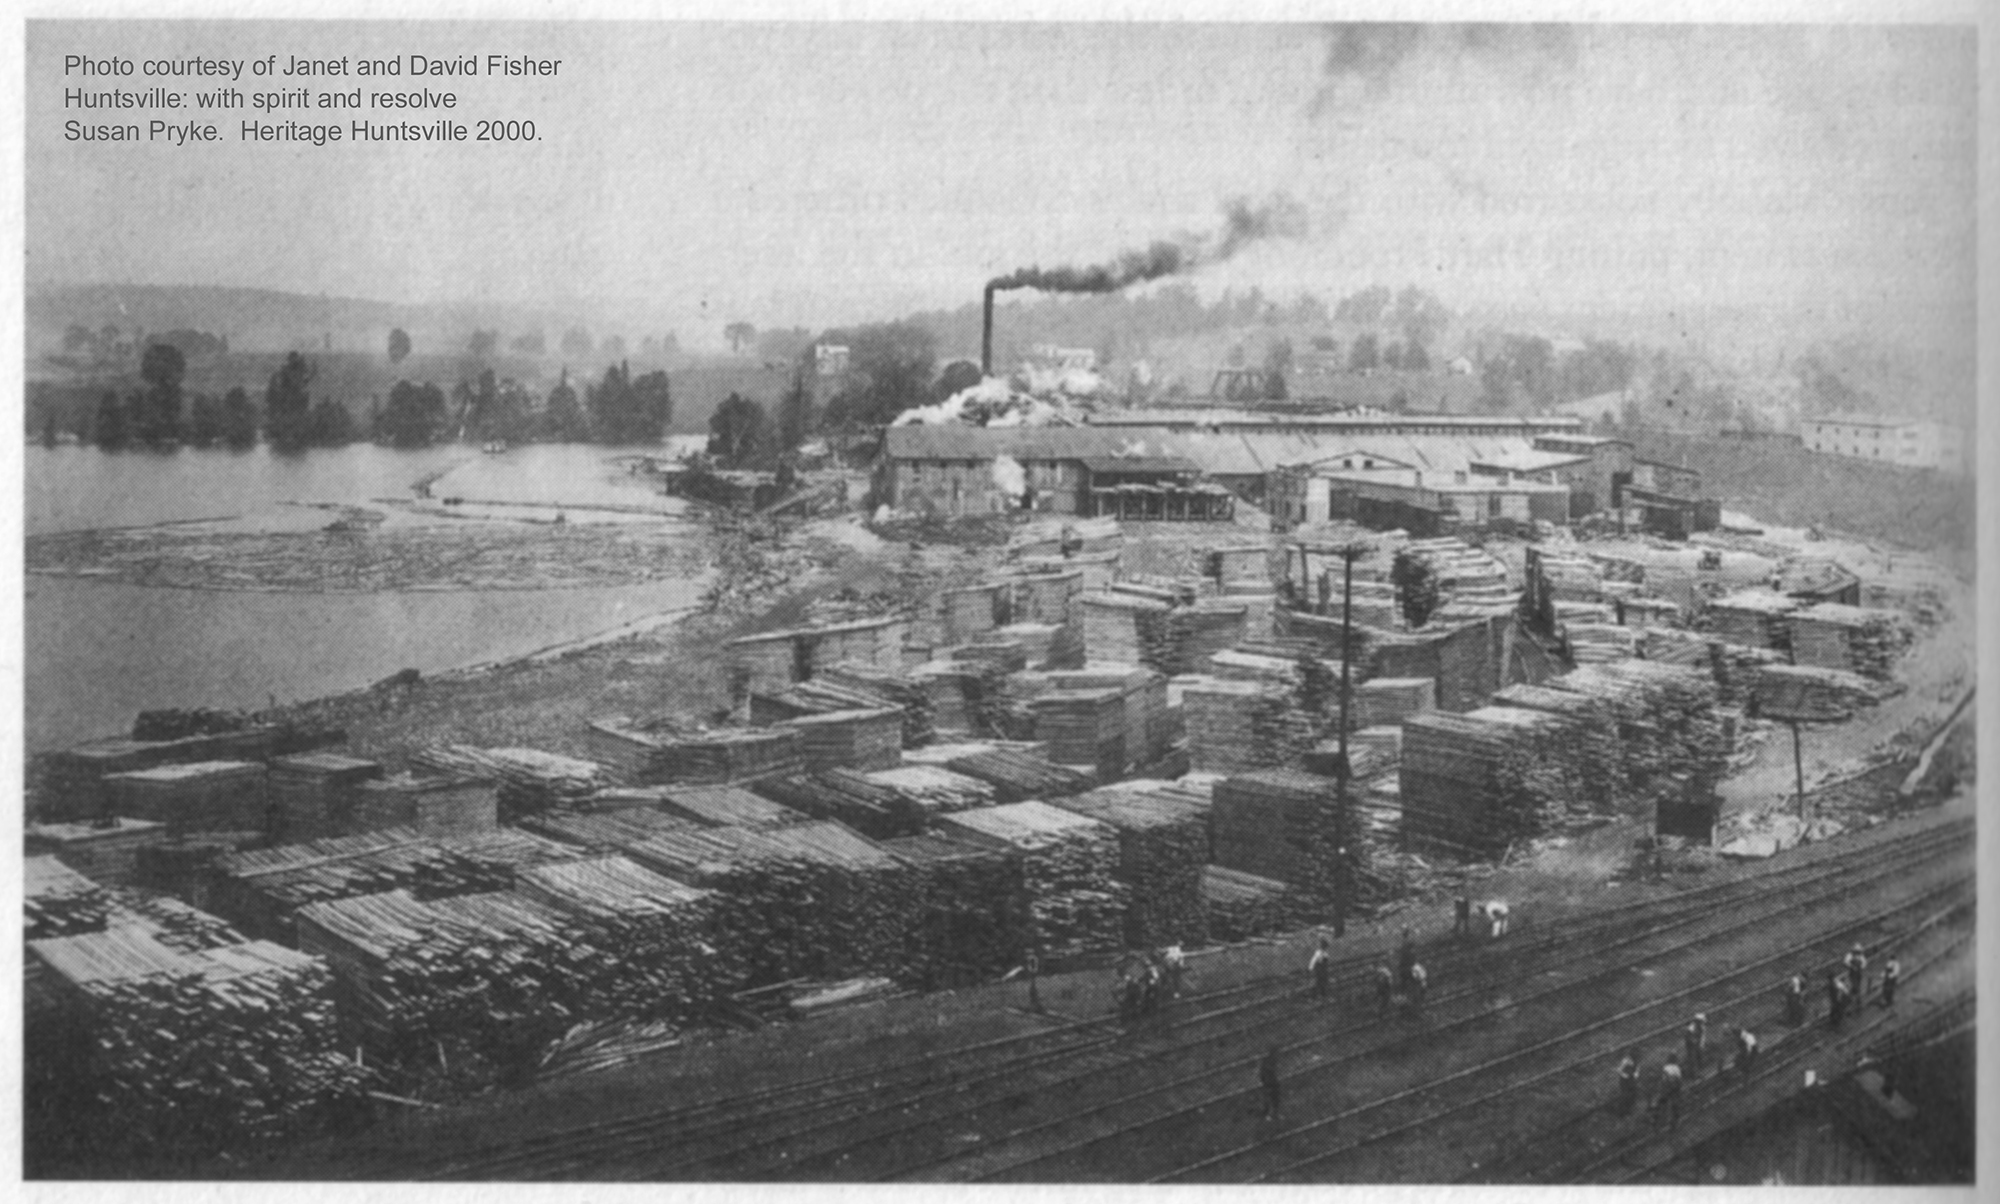 R.K. 9 Muskoka Wood Manufacturing Plant 1902 Hunter's Bay botanigal mod w text 2000.jpg